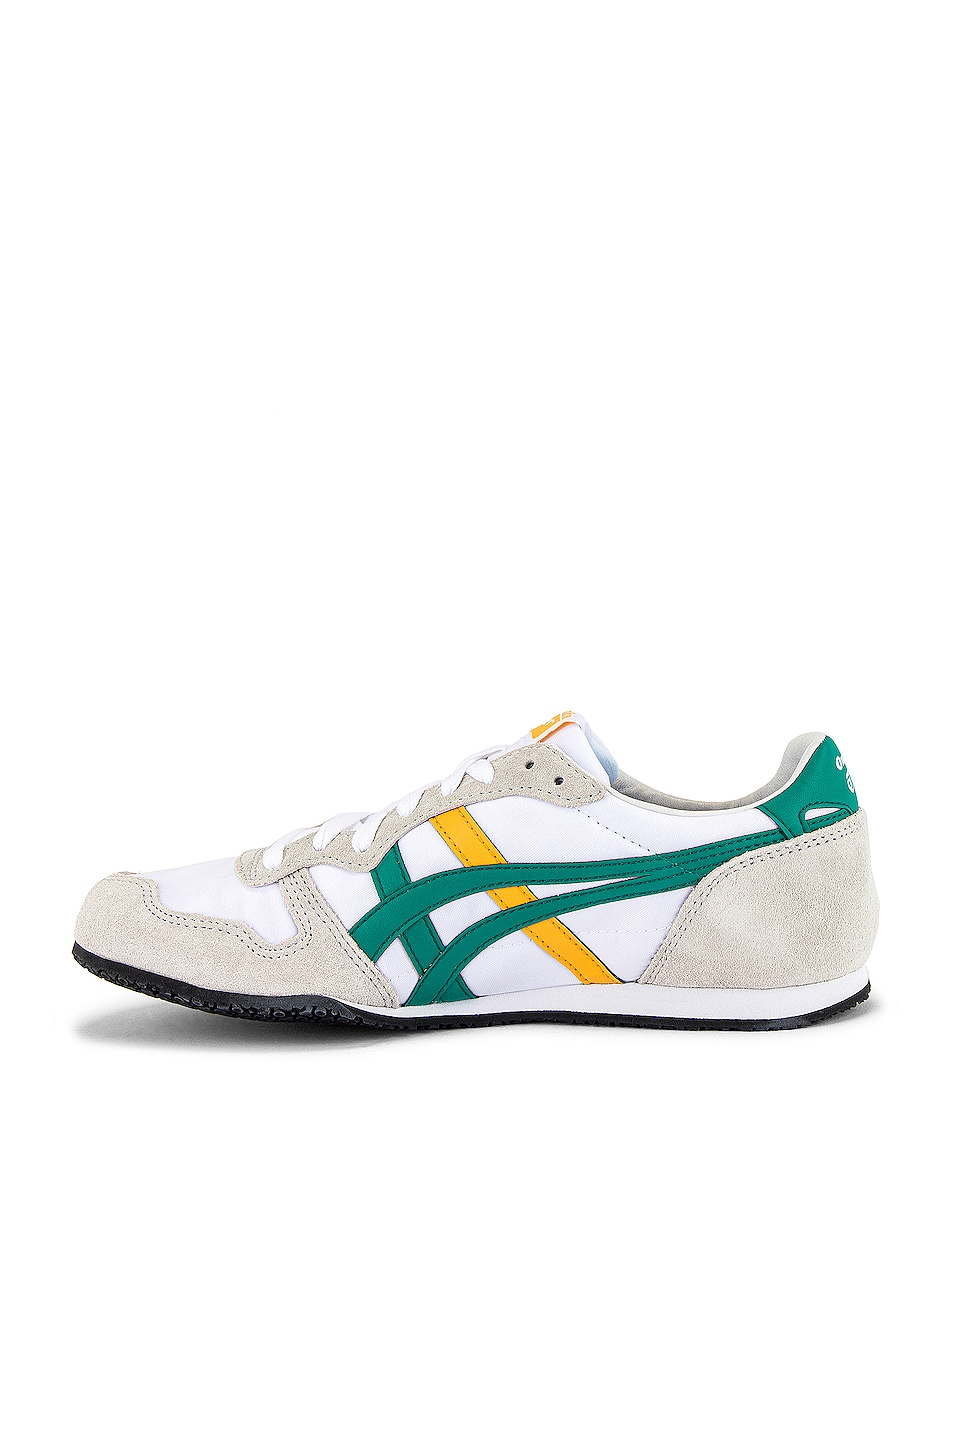 Image 5 of Onitsuka Tiger Serrano in White & Jelly Bean